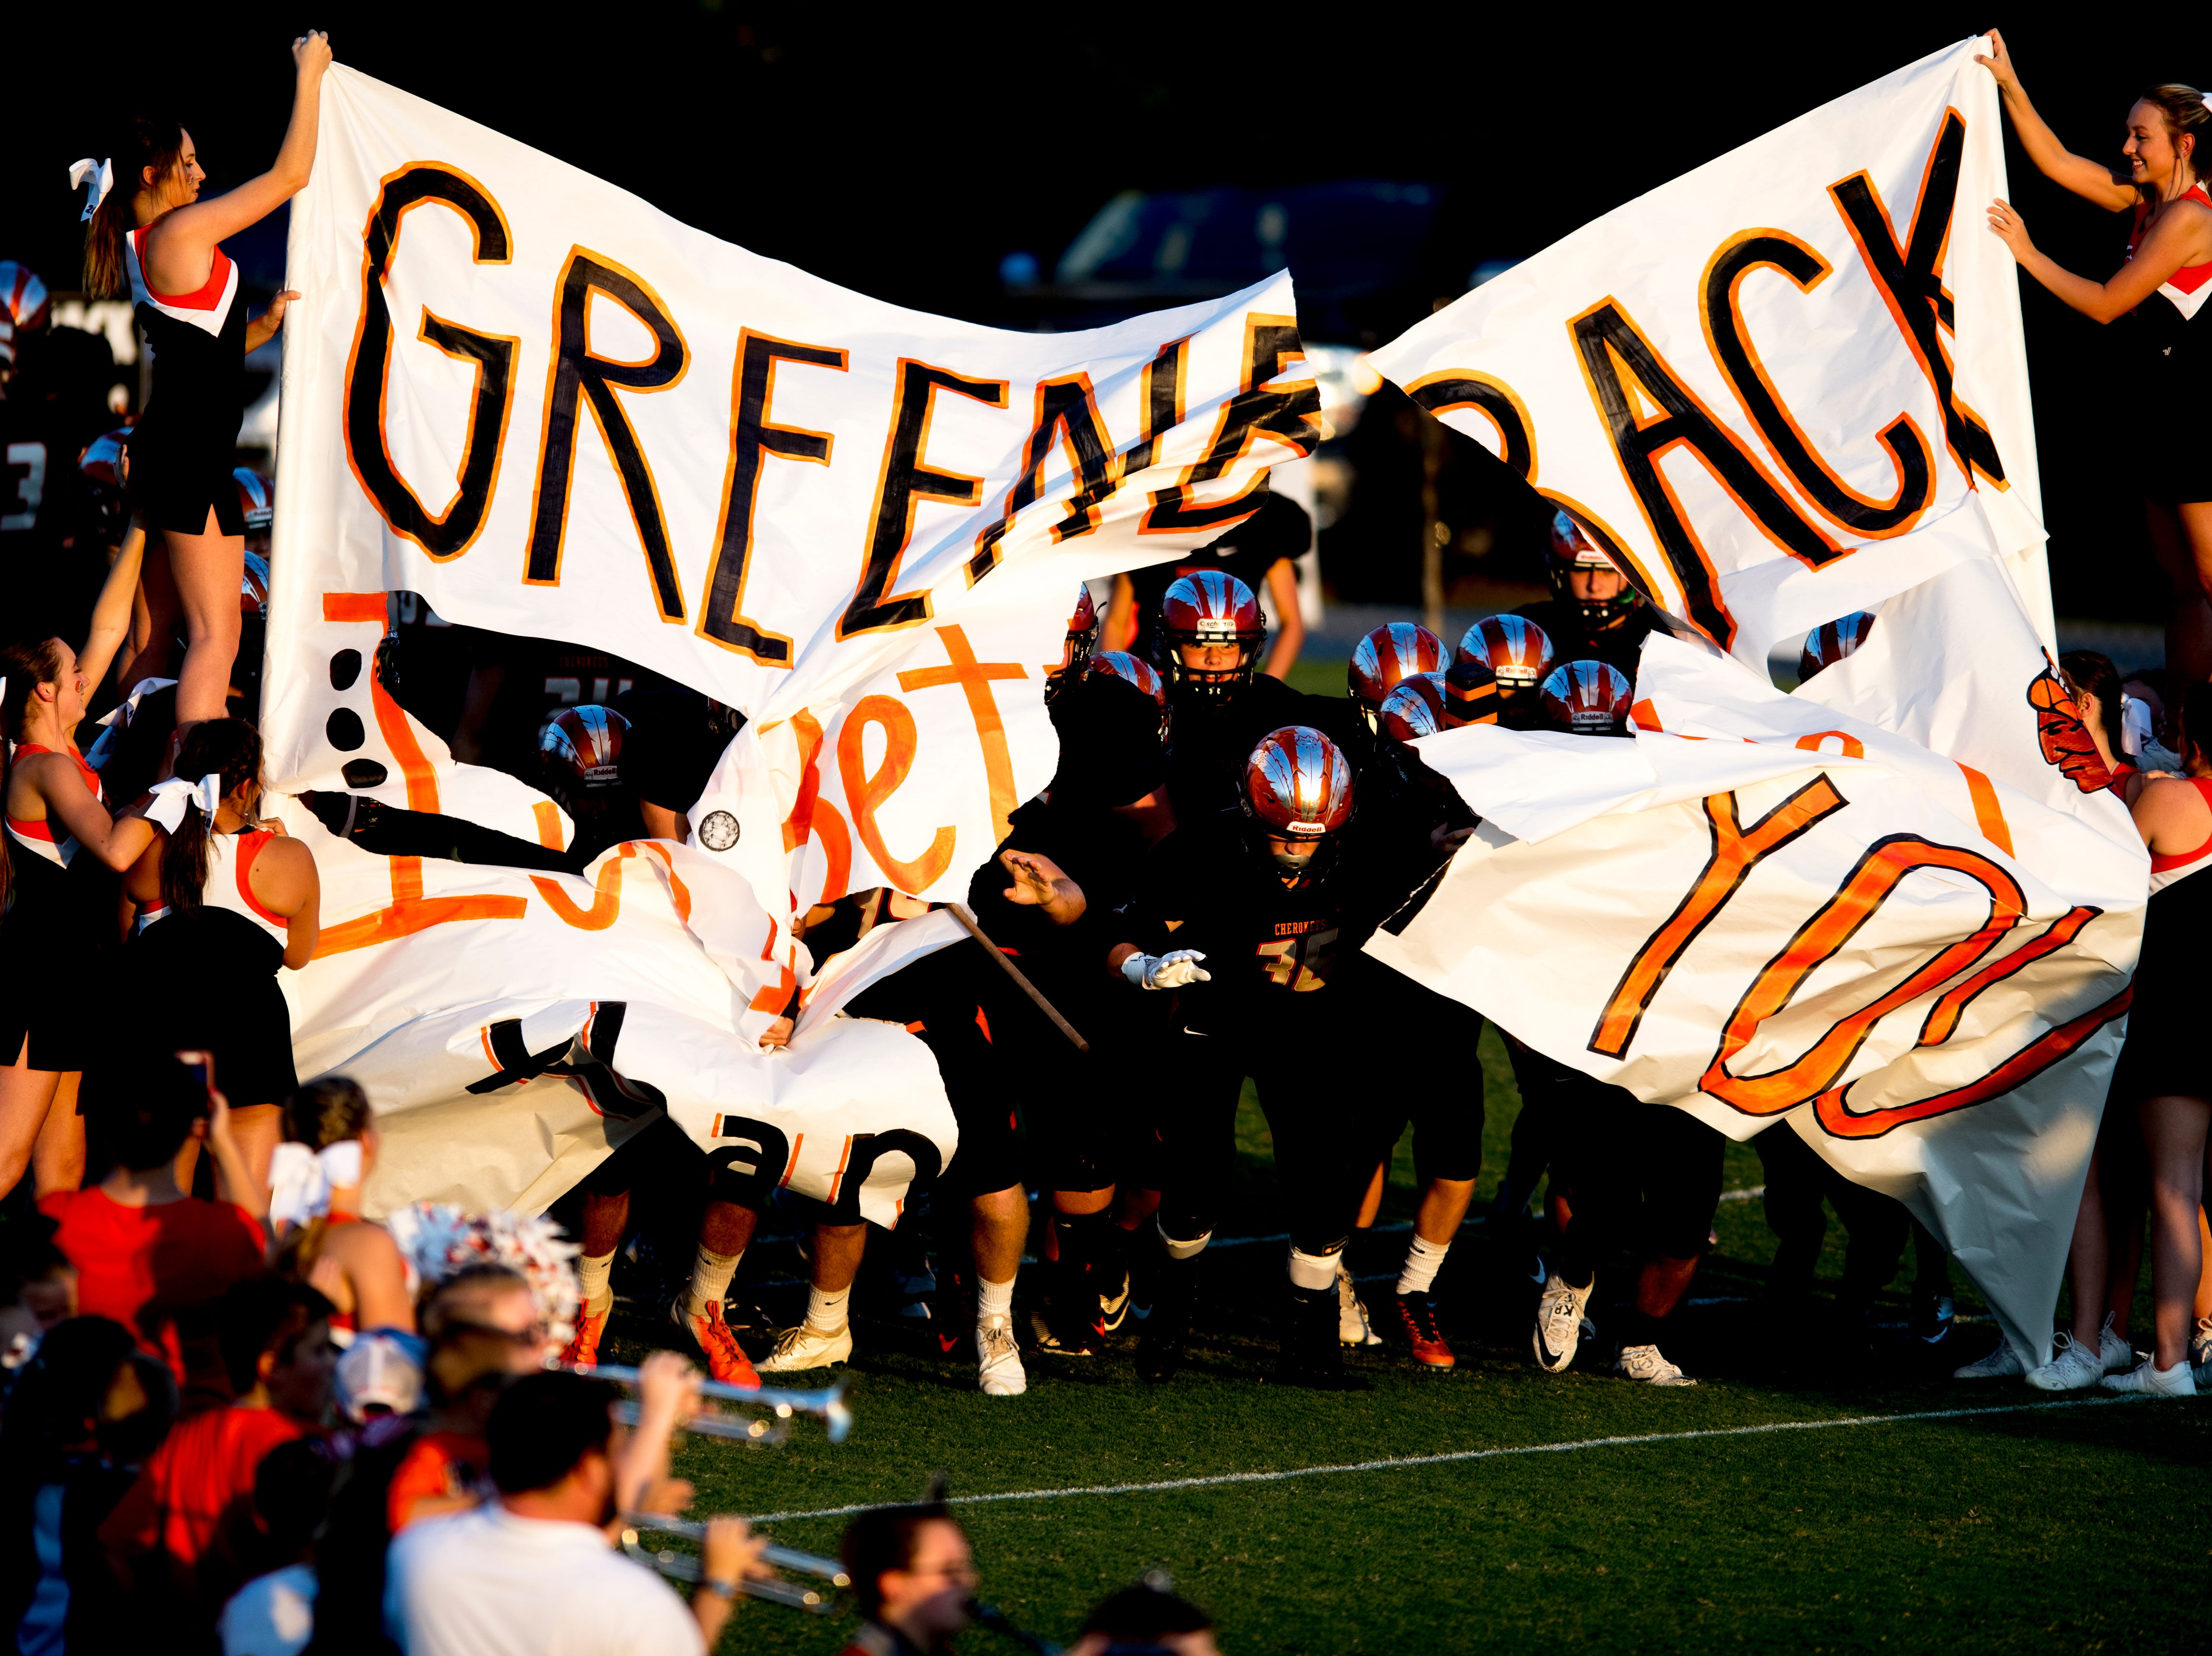 Greenback takes the field during a football game between Greenback and Grace Christian at Greenback High School in Greenback, Tennessee on Thursday, September 20, 2018.